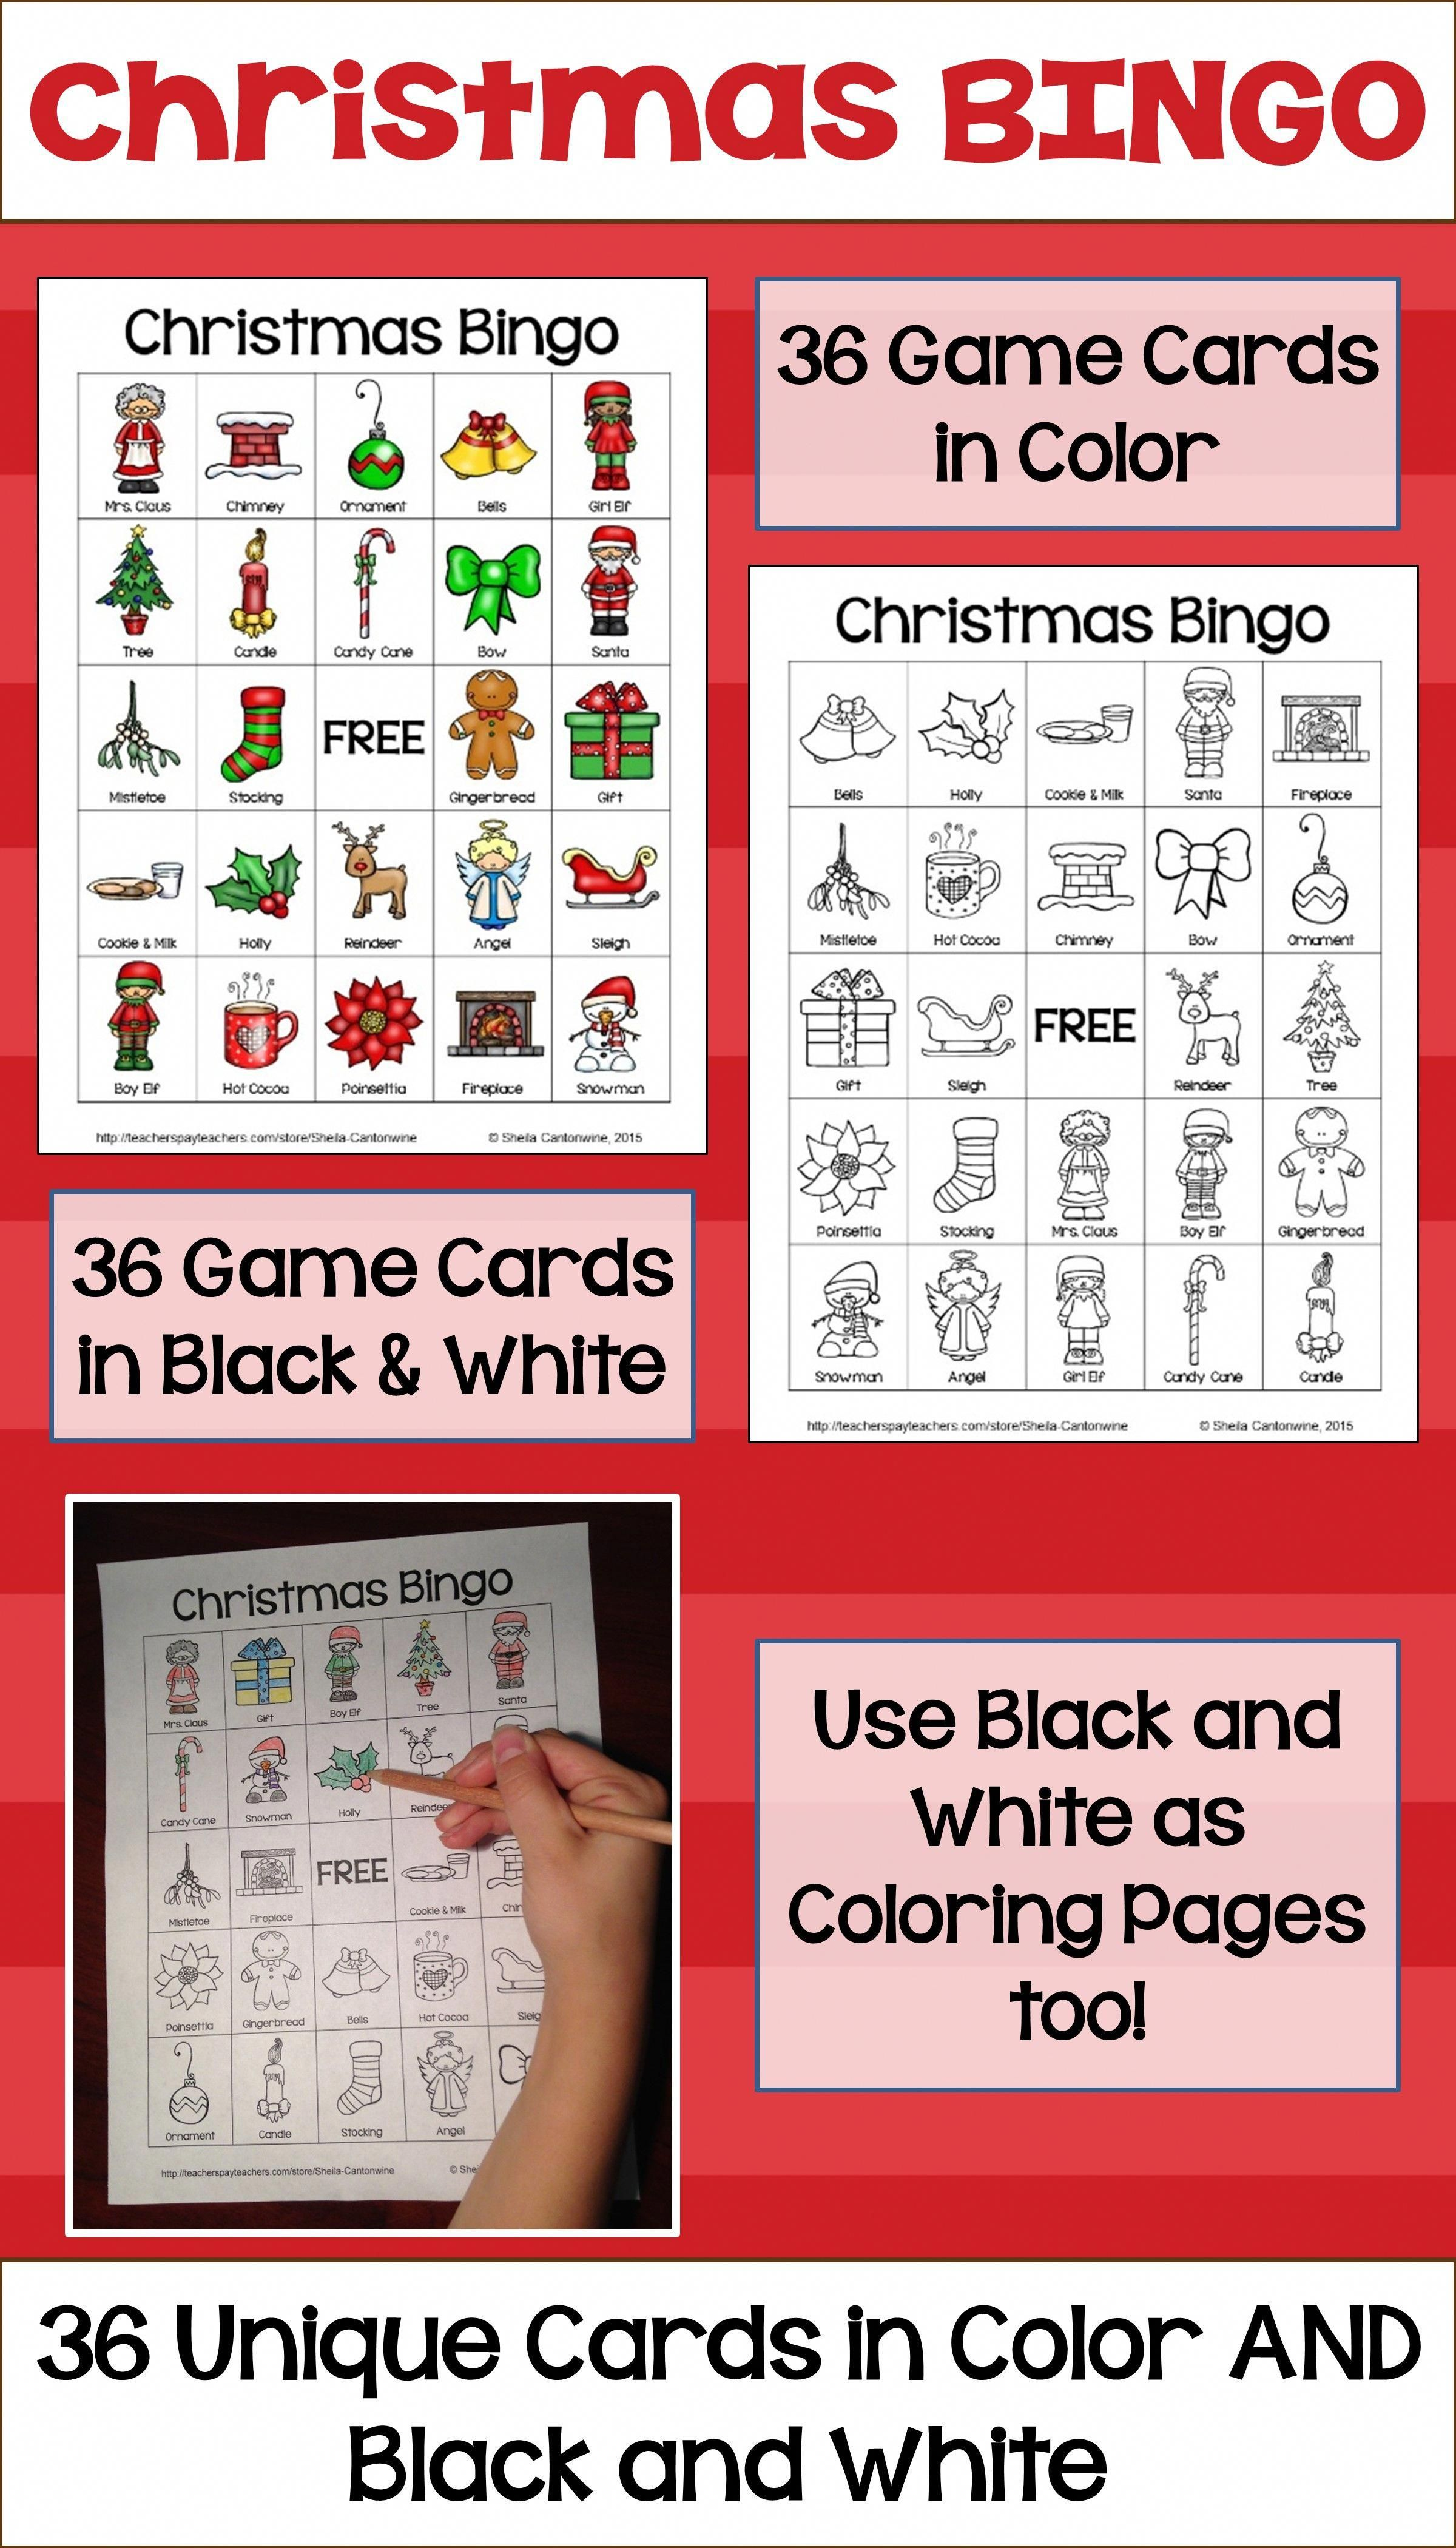 Christmas Bingo Game Party Games Xmas Activities for Families 24 Players